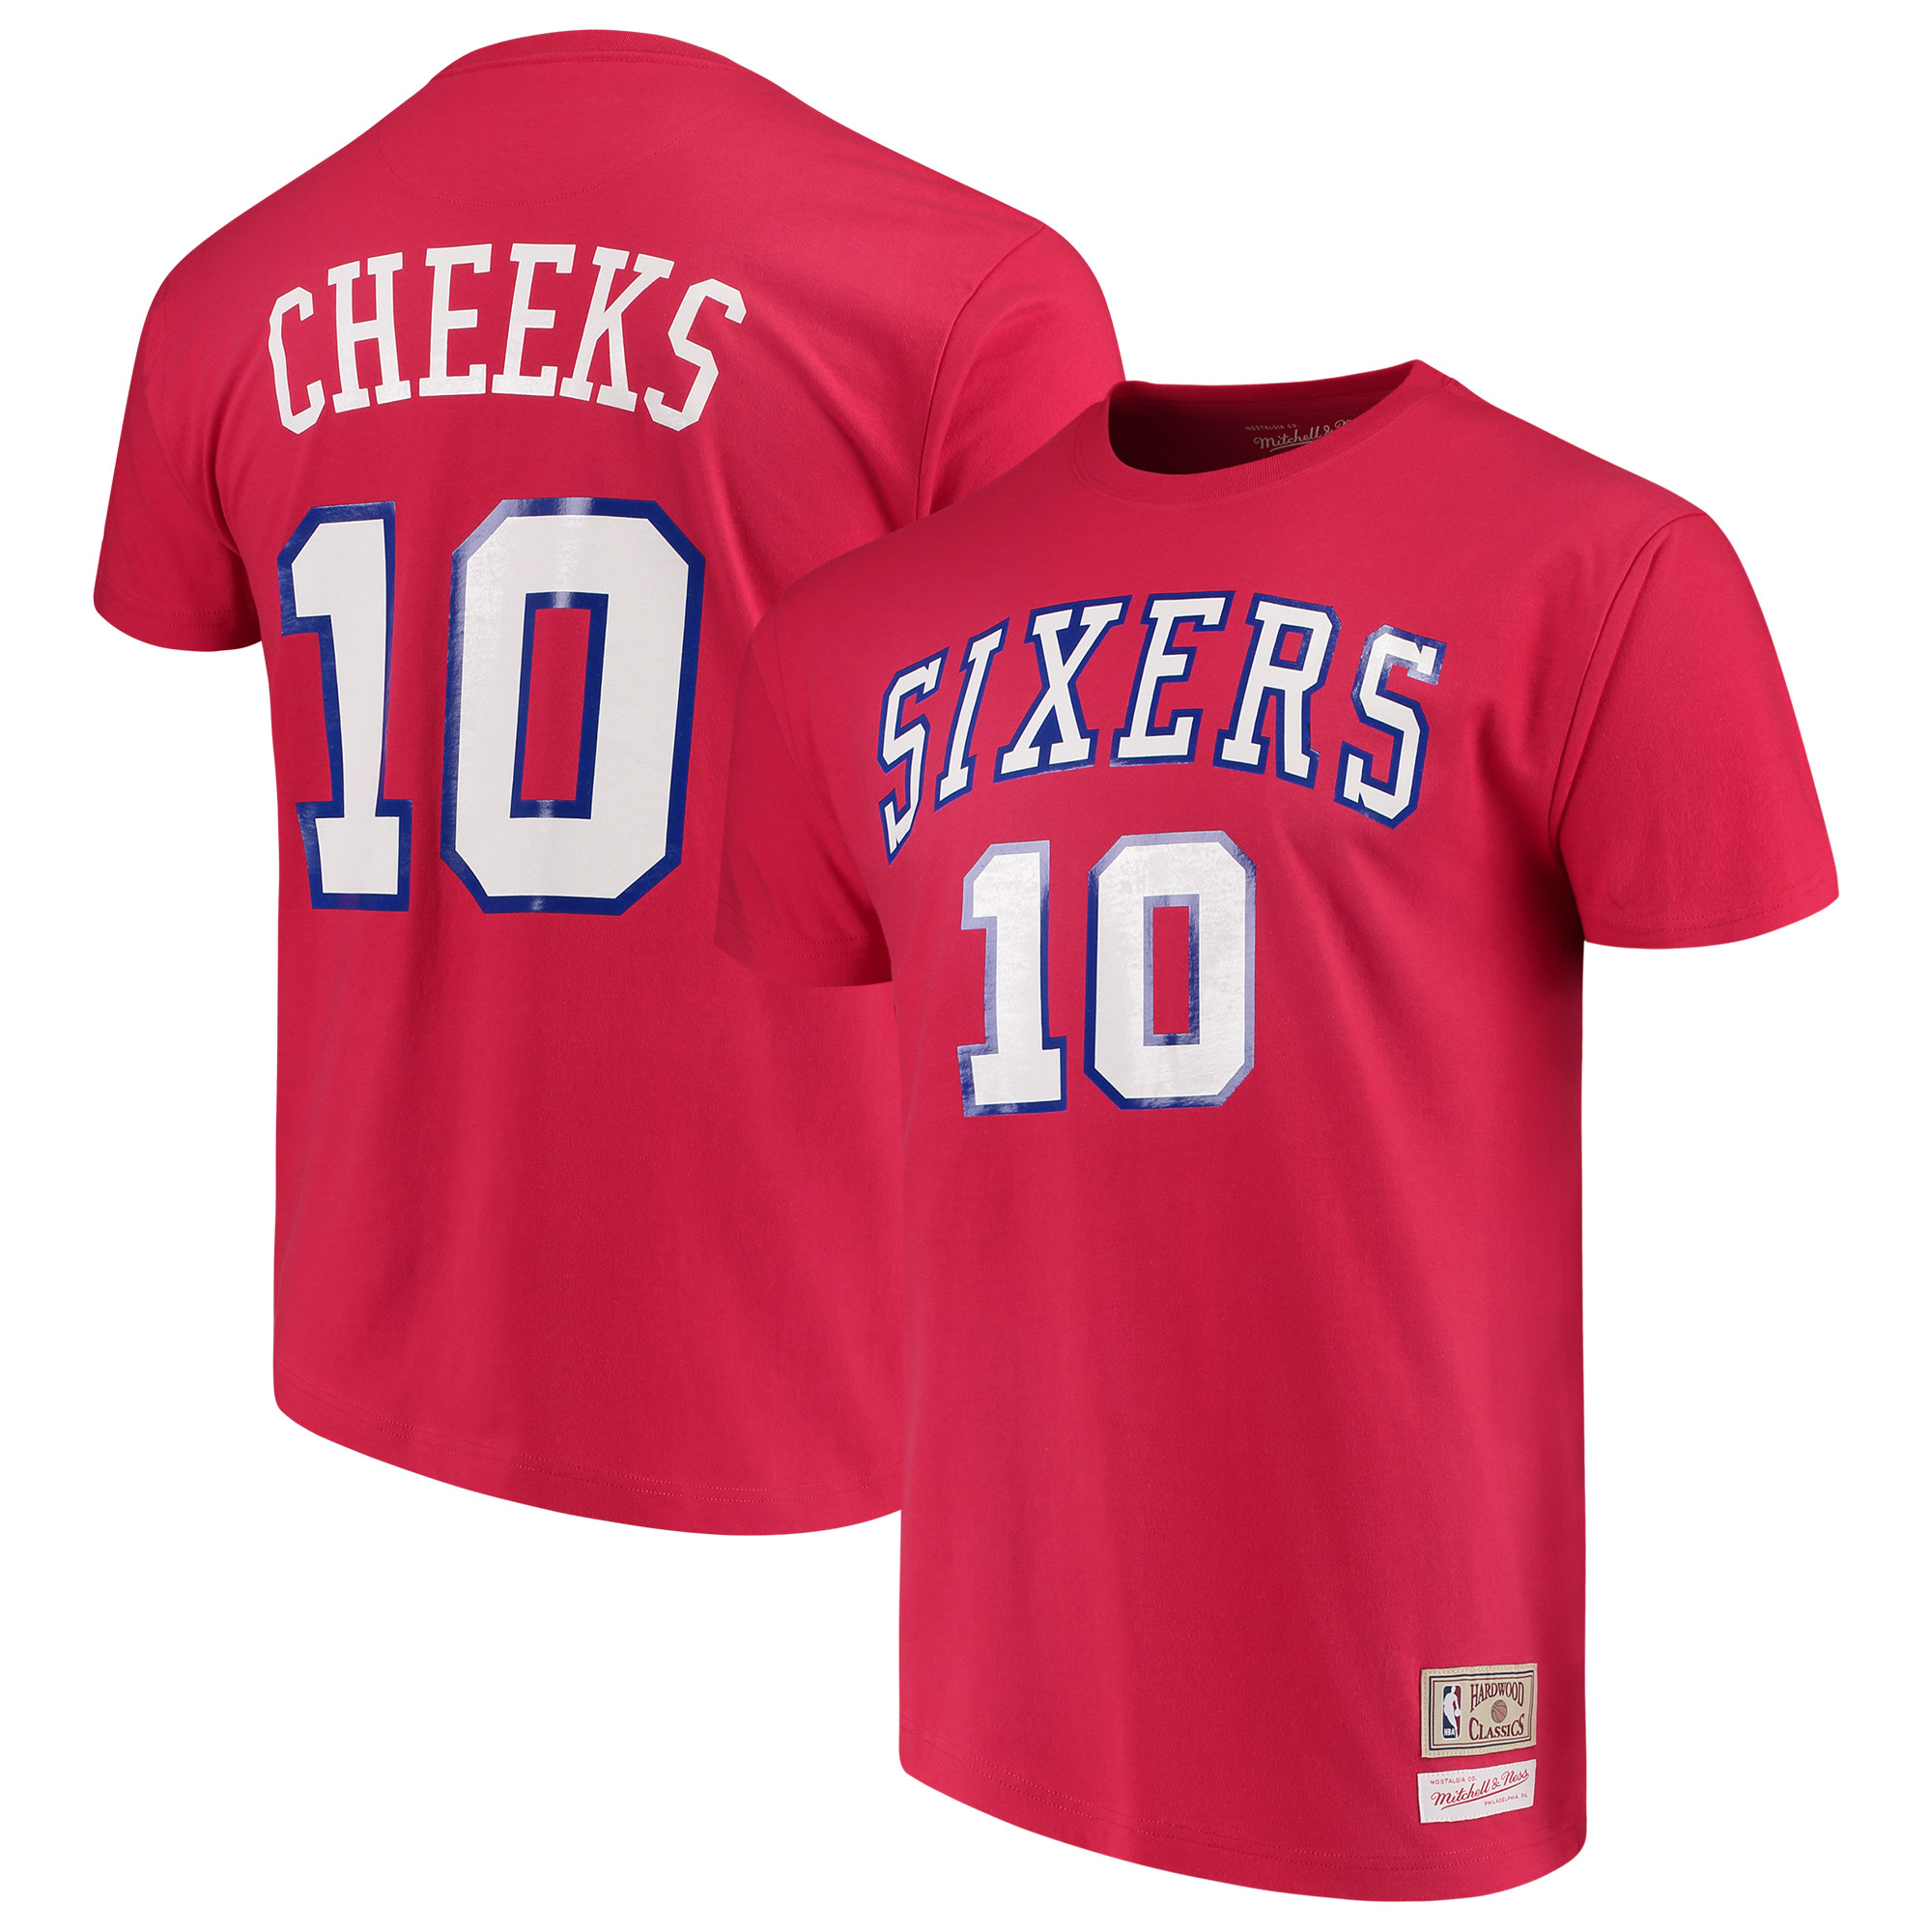 Maurice Cheeks Philadelphia 76ers Mitchell & Ness Hardwood Classics Name and Number T-Shirt - Red